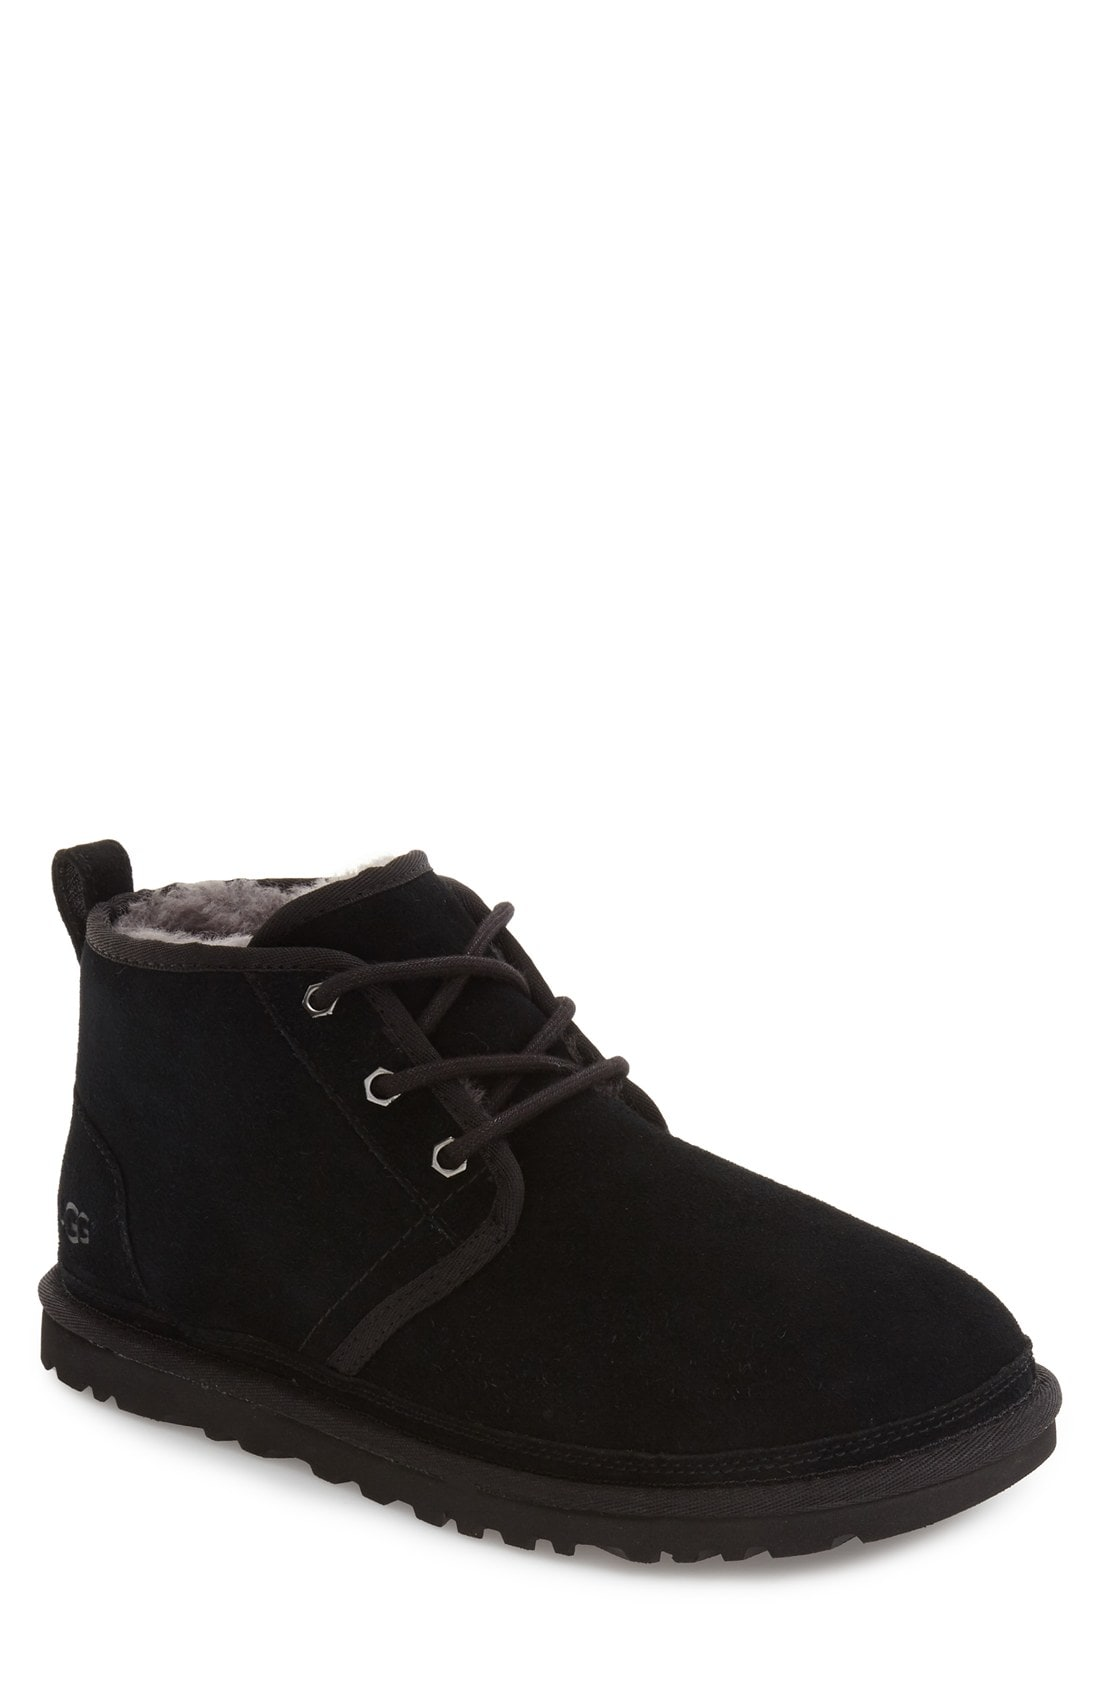 Men's Black Shoes | Nordstrom